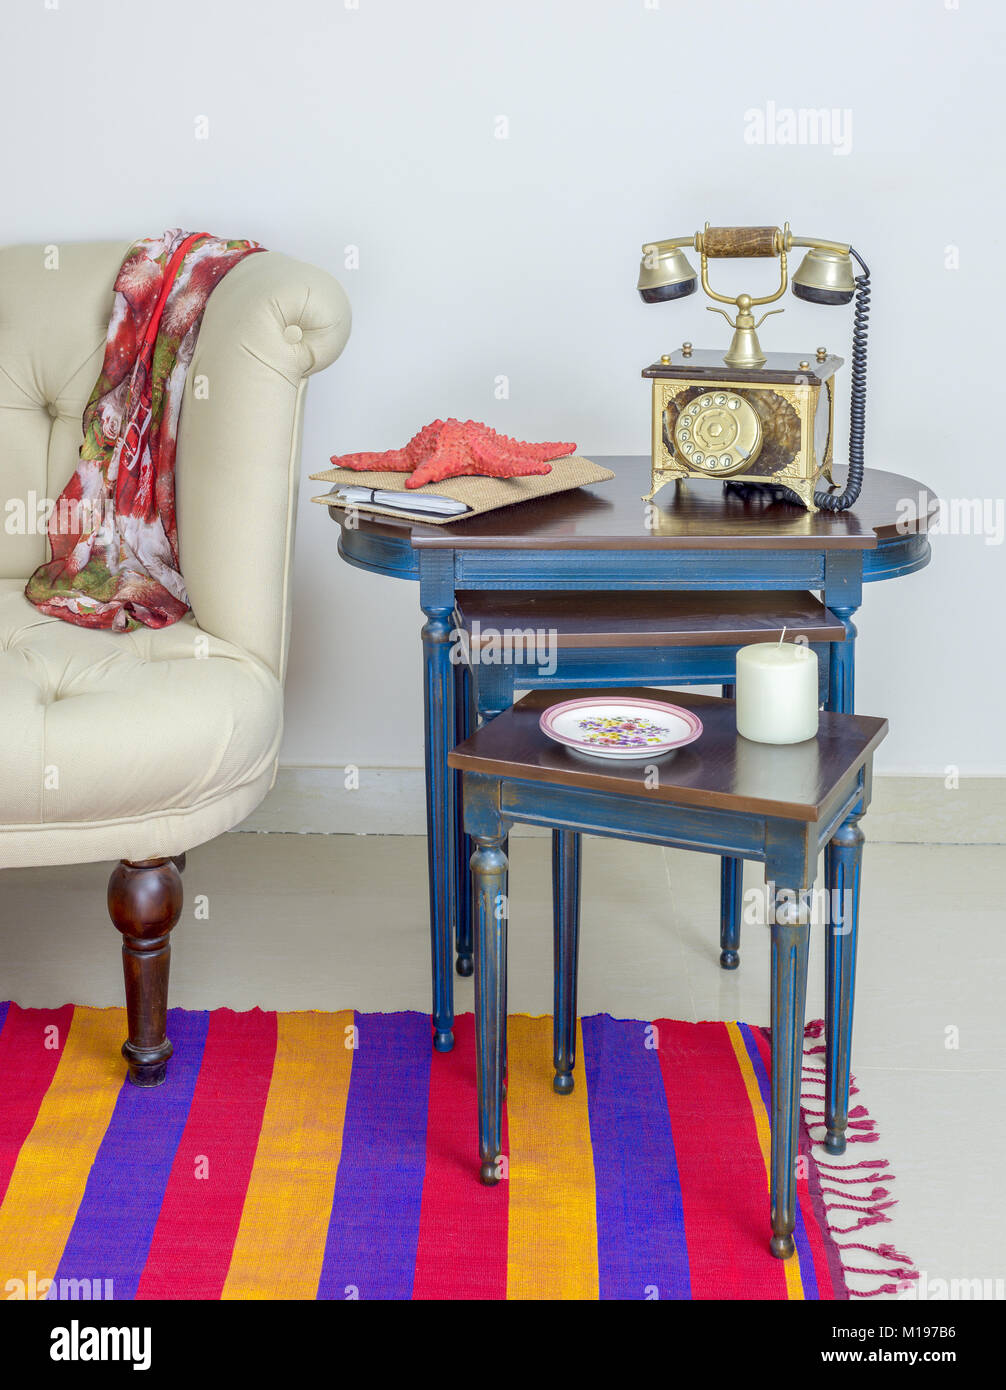 Interior shot of old golden telephone set, white candle, red starfish and colorful ornate plate over three nested - Stock Image